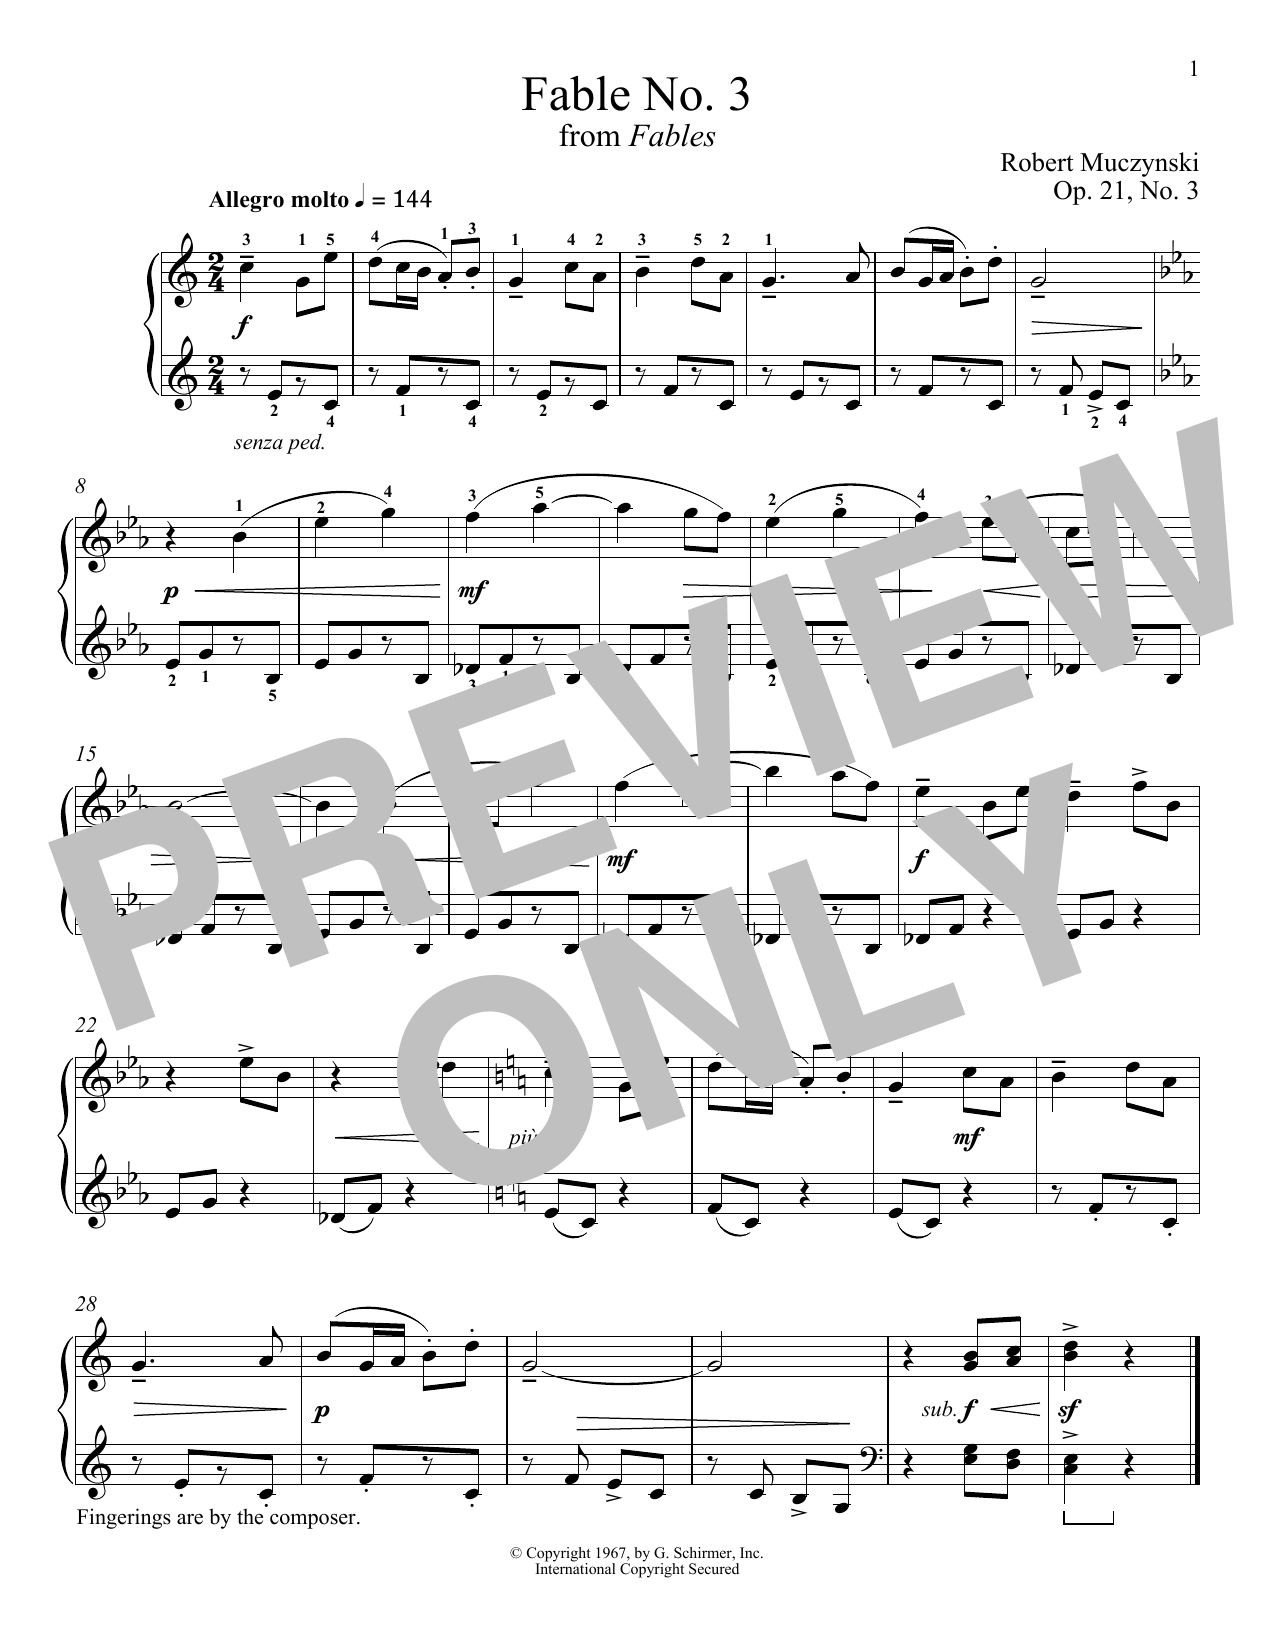 Robert Muczynski Fable No. 3, Op. 21 sheet music notes and chords. Download Printable PDF.